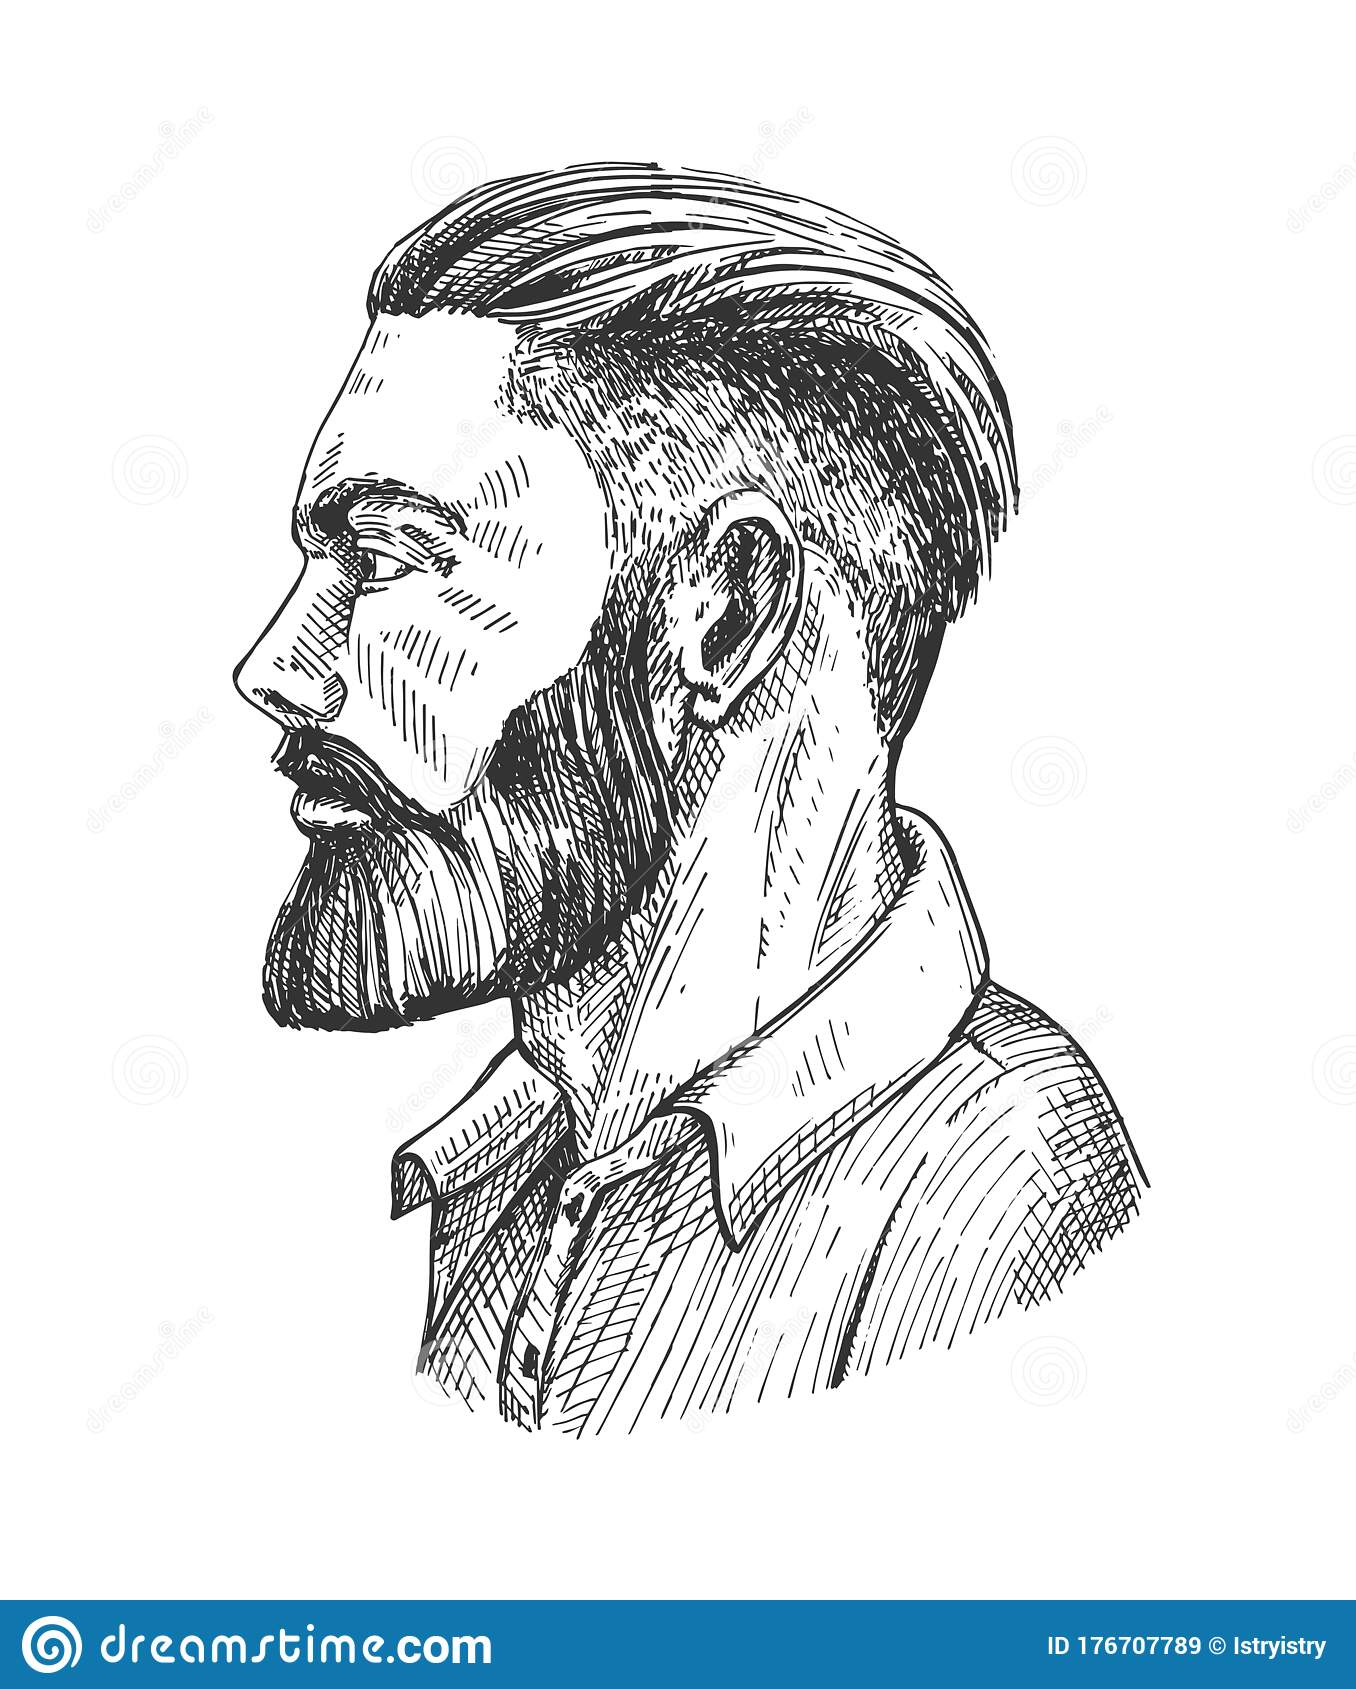 Abstract Bearded Man Stock Illustrations 868 Abstract Bearded Man Stock Illustrations Vectors Clipart Dreamstime